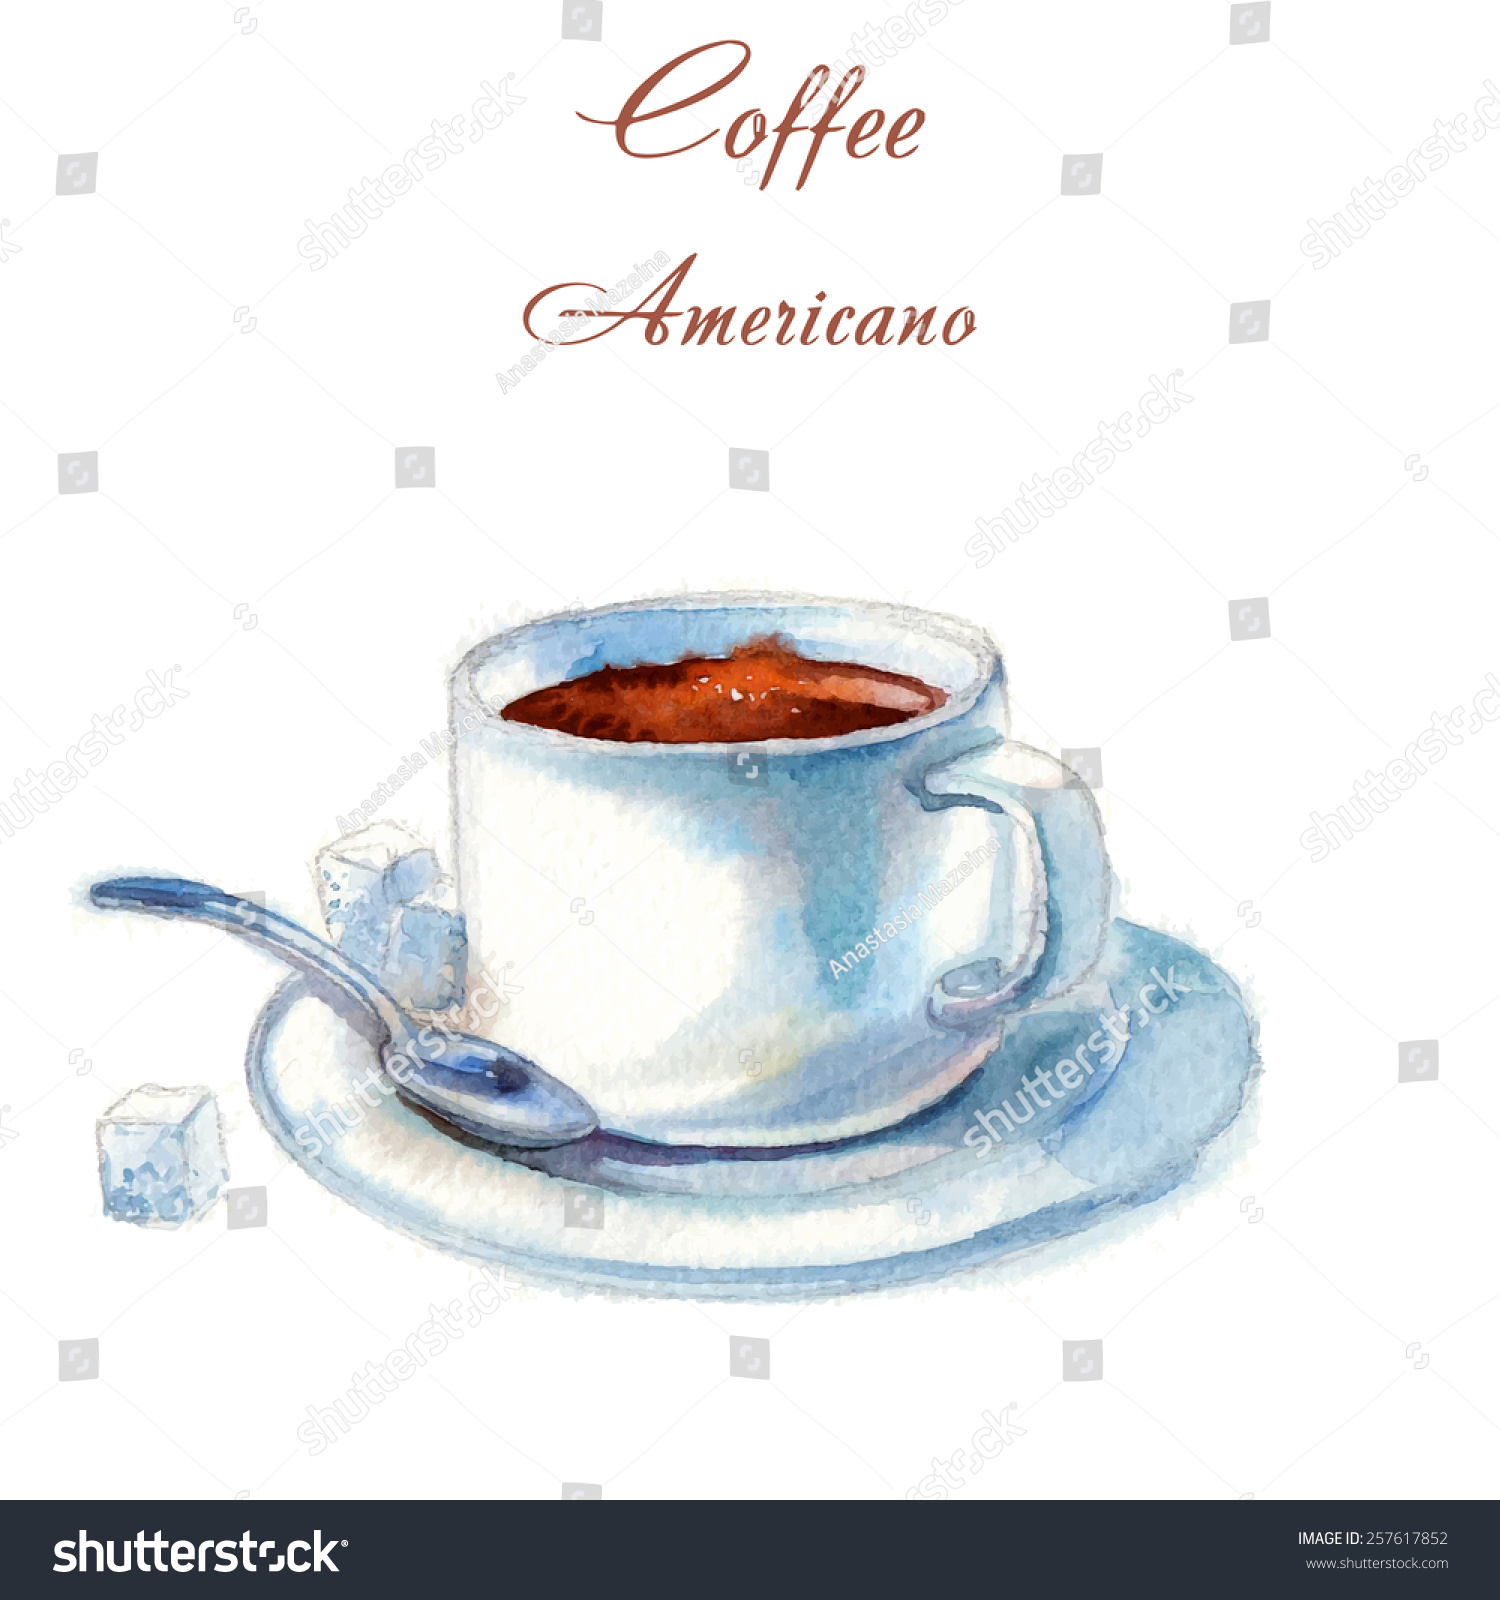 Americano Coffee English Hand Drawn Vector Watercolor Style Americano Coffee